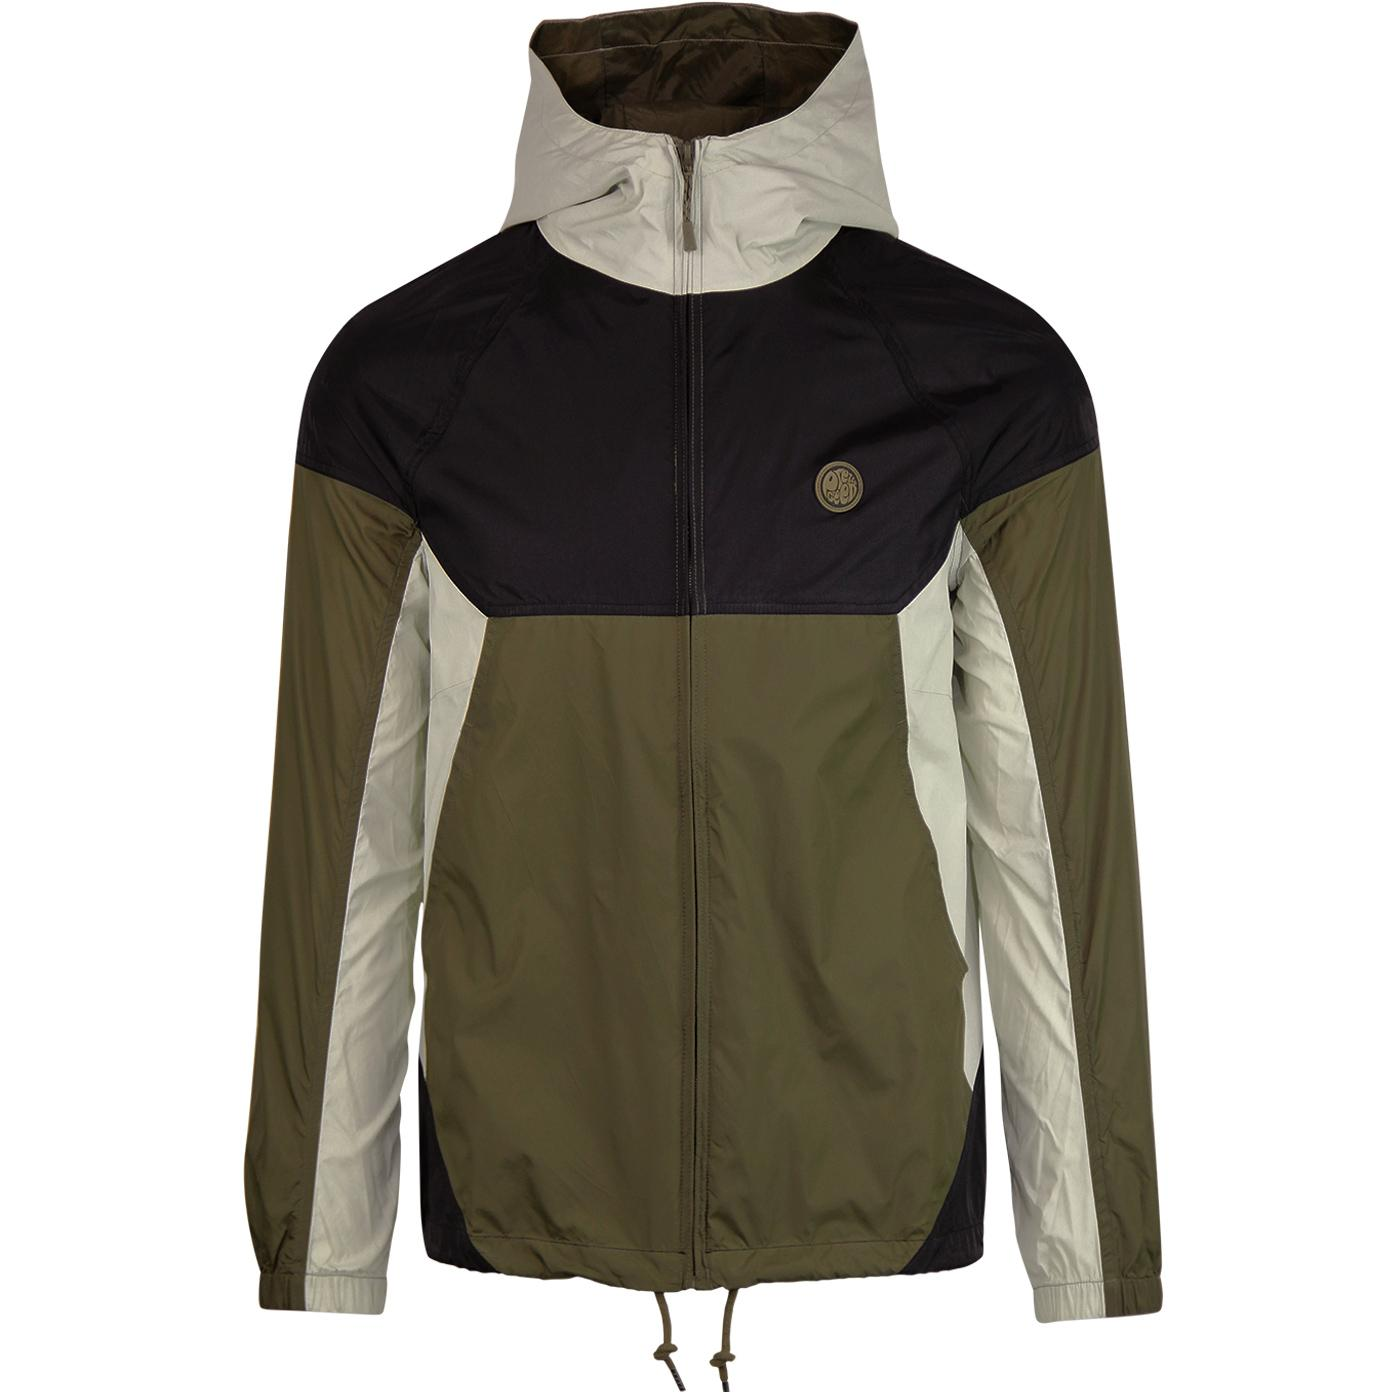 PRETTY GREEN Retro Contrast Panel Hooded Jacket K